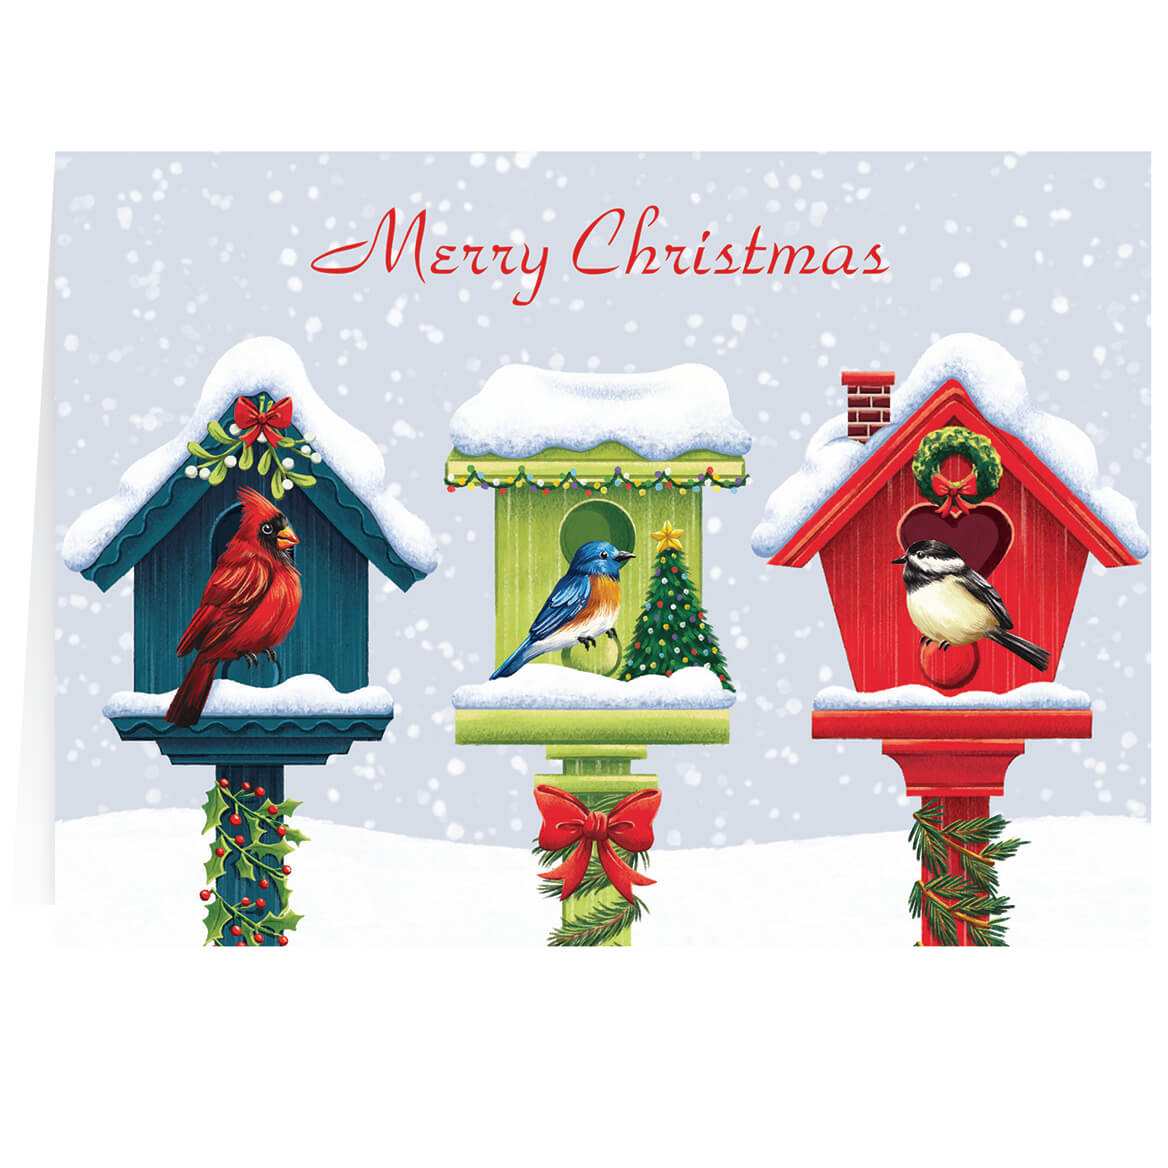 Festive Friends Personalized Christmas Cards Miles Kimball